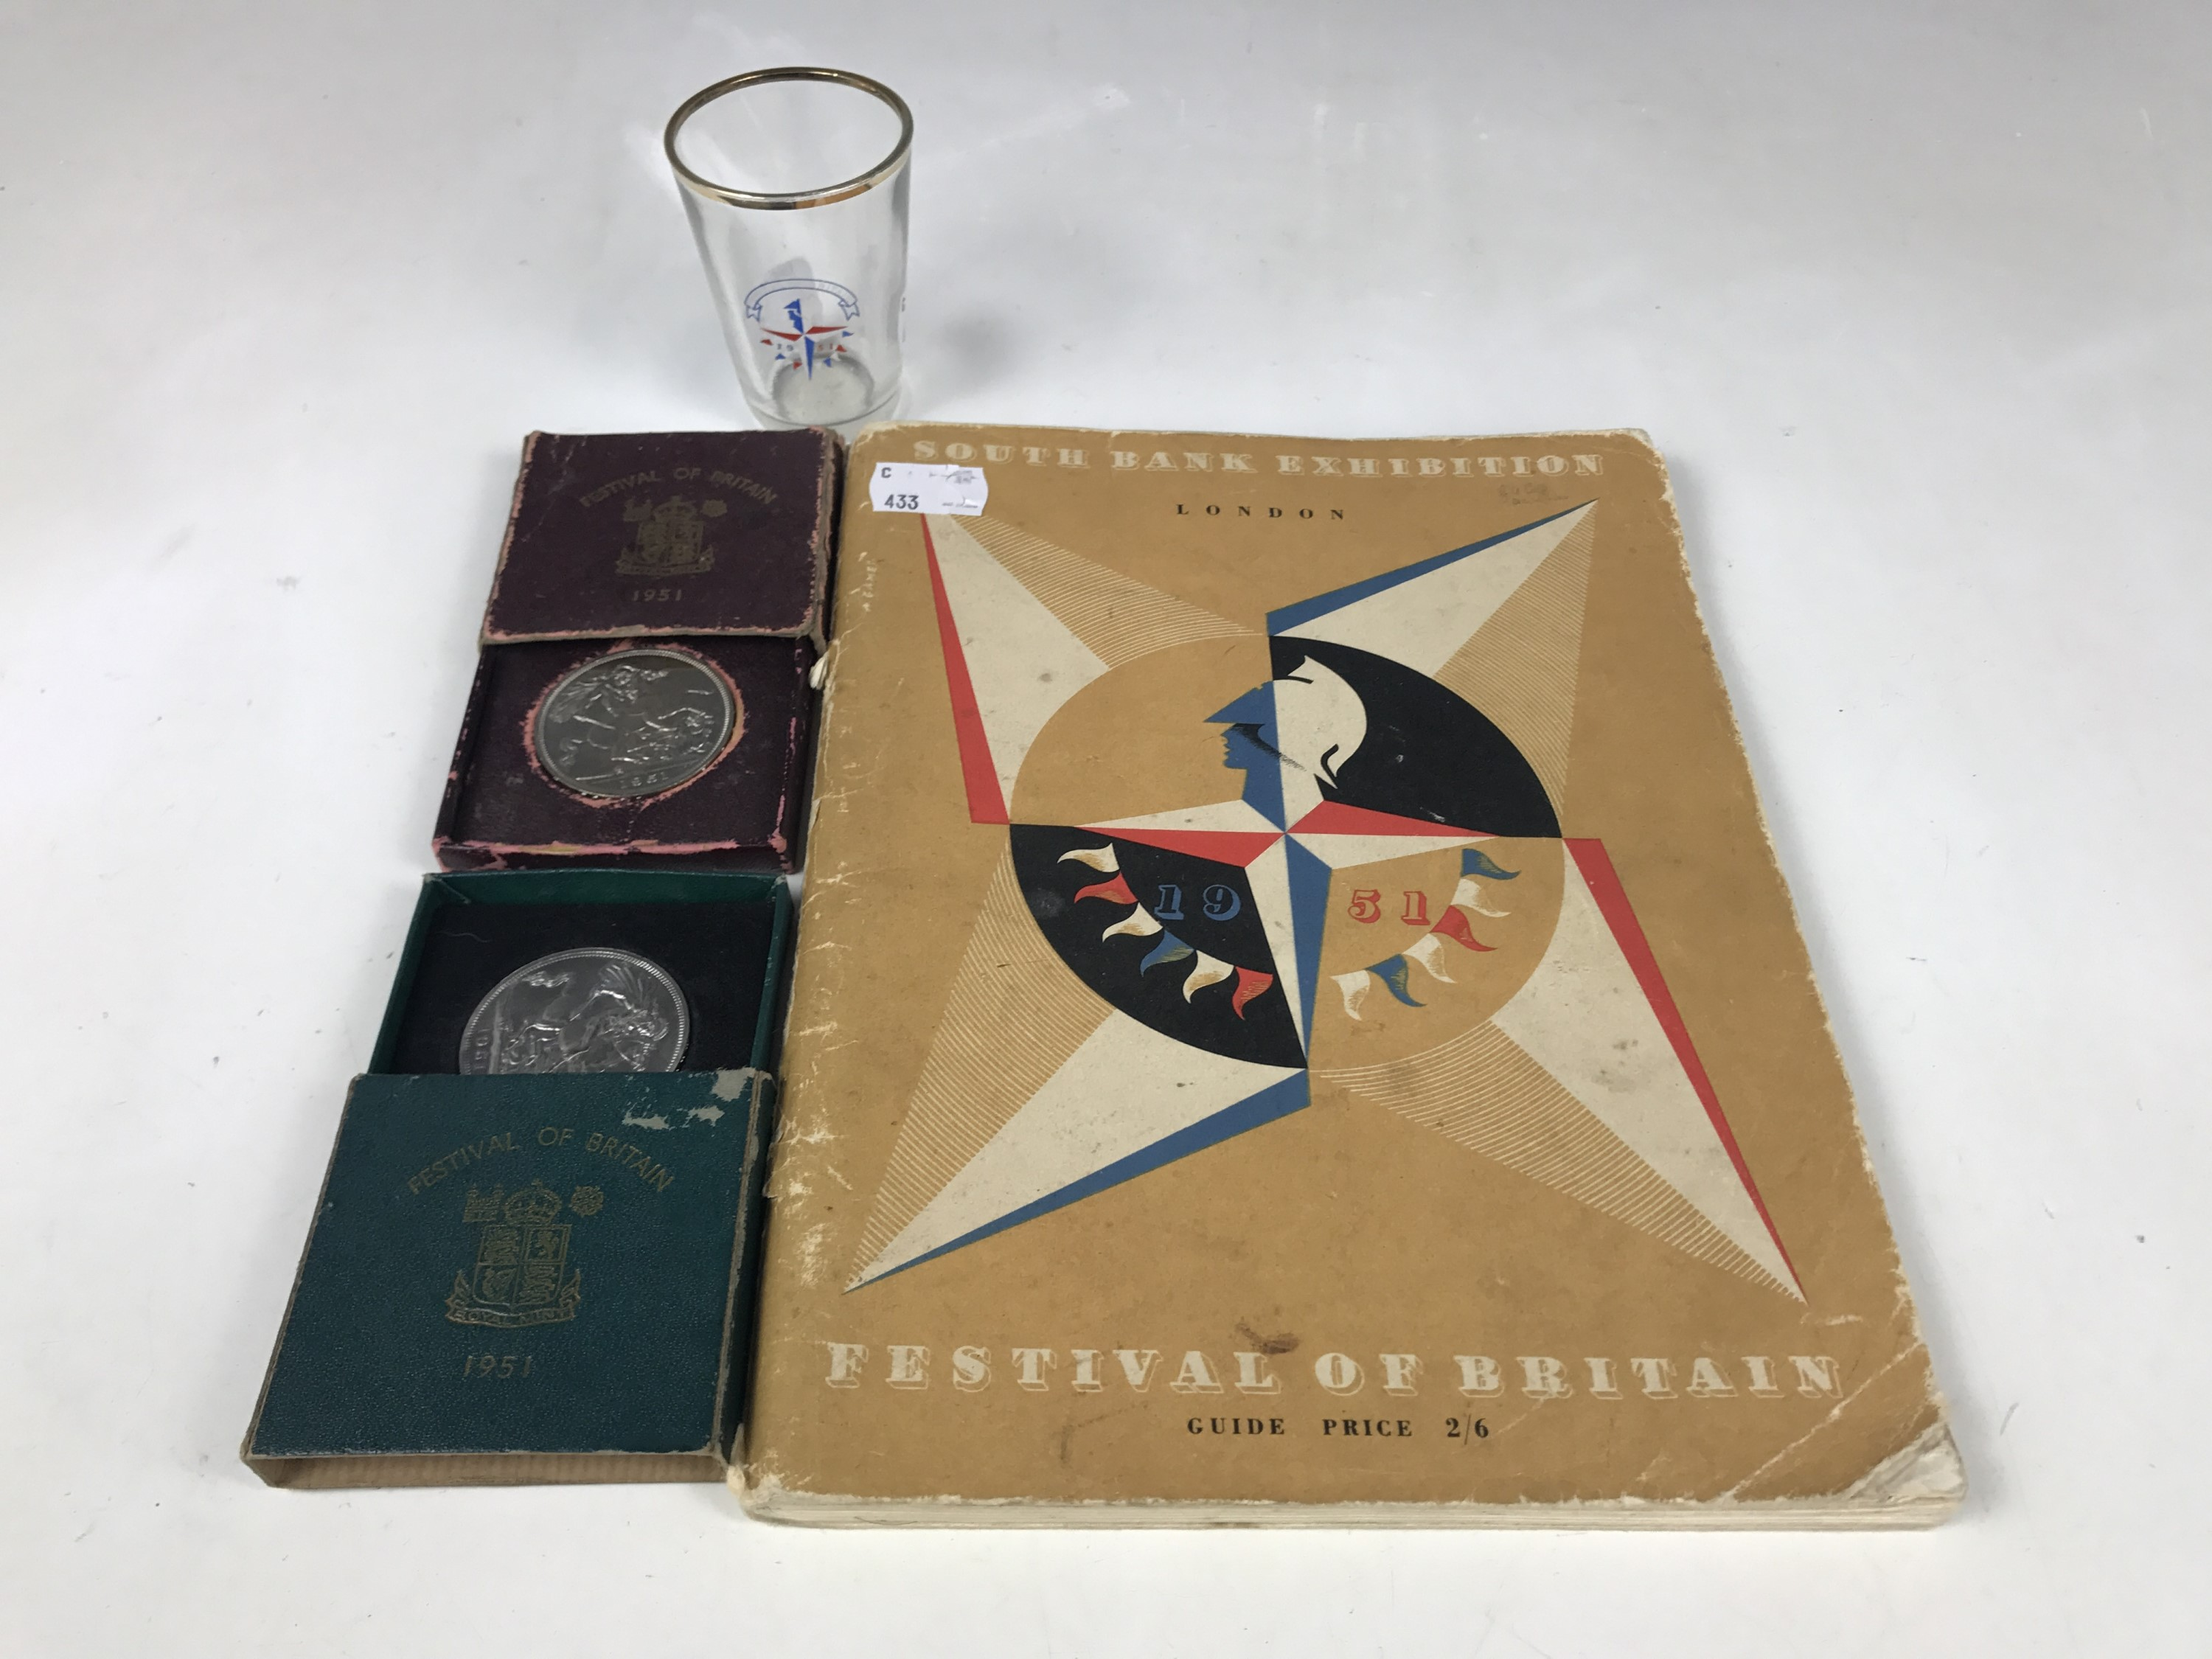 Lot 8 - A Festival of Britain book together with two coins and a small glass